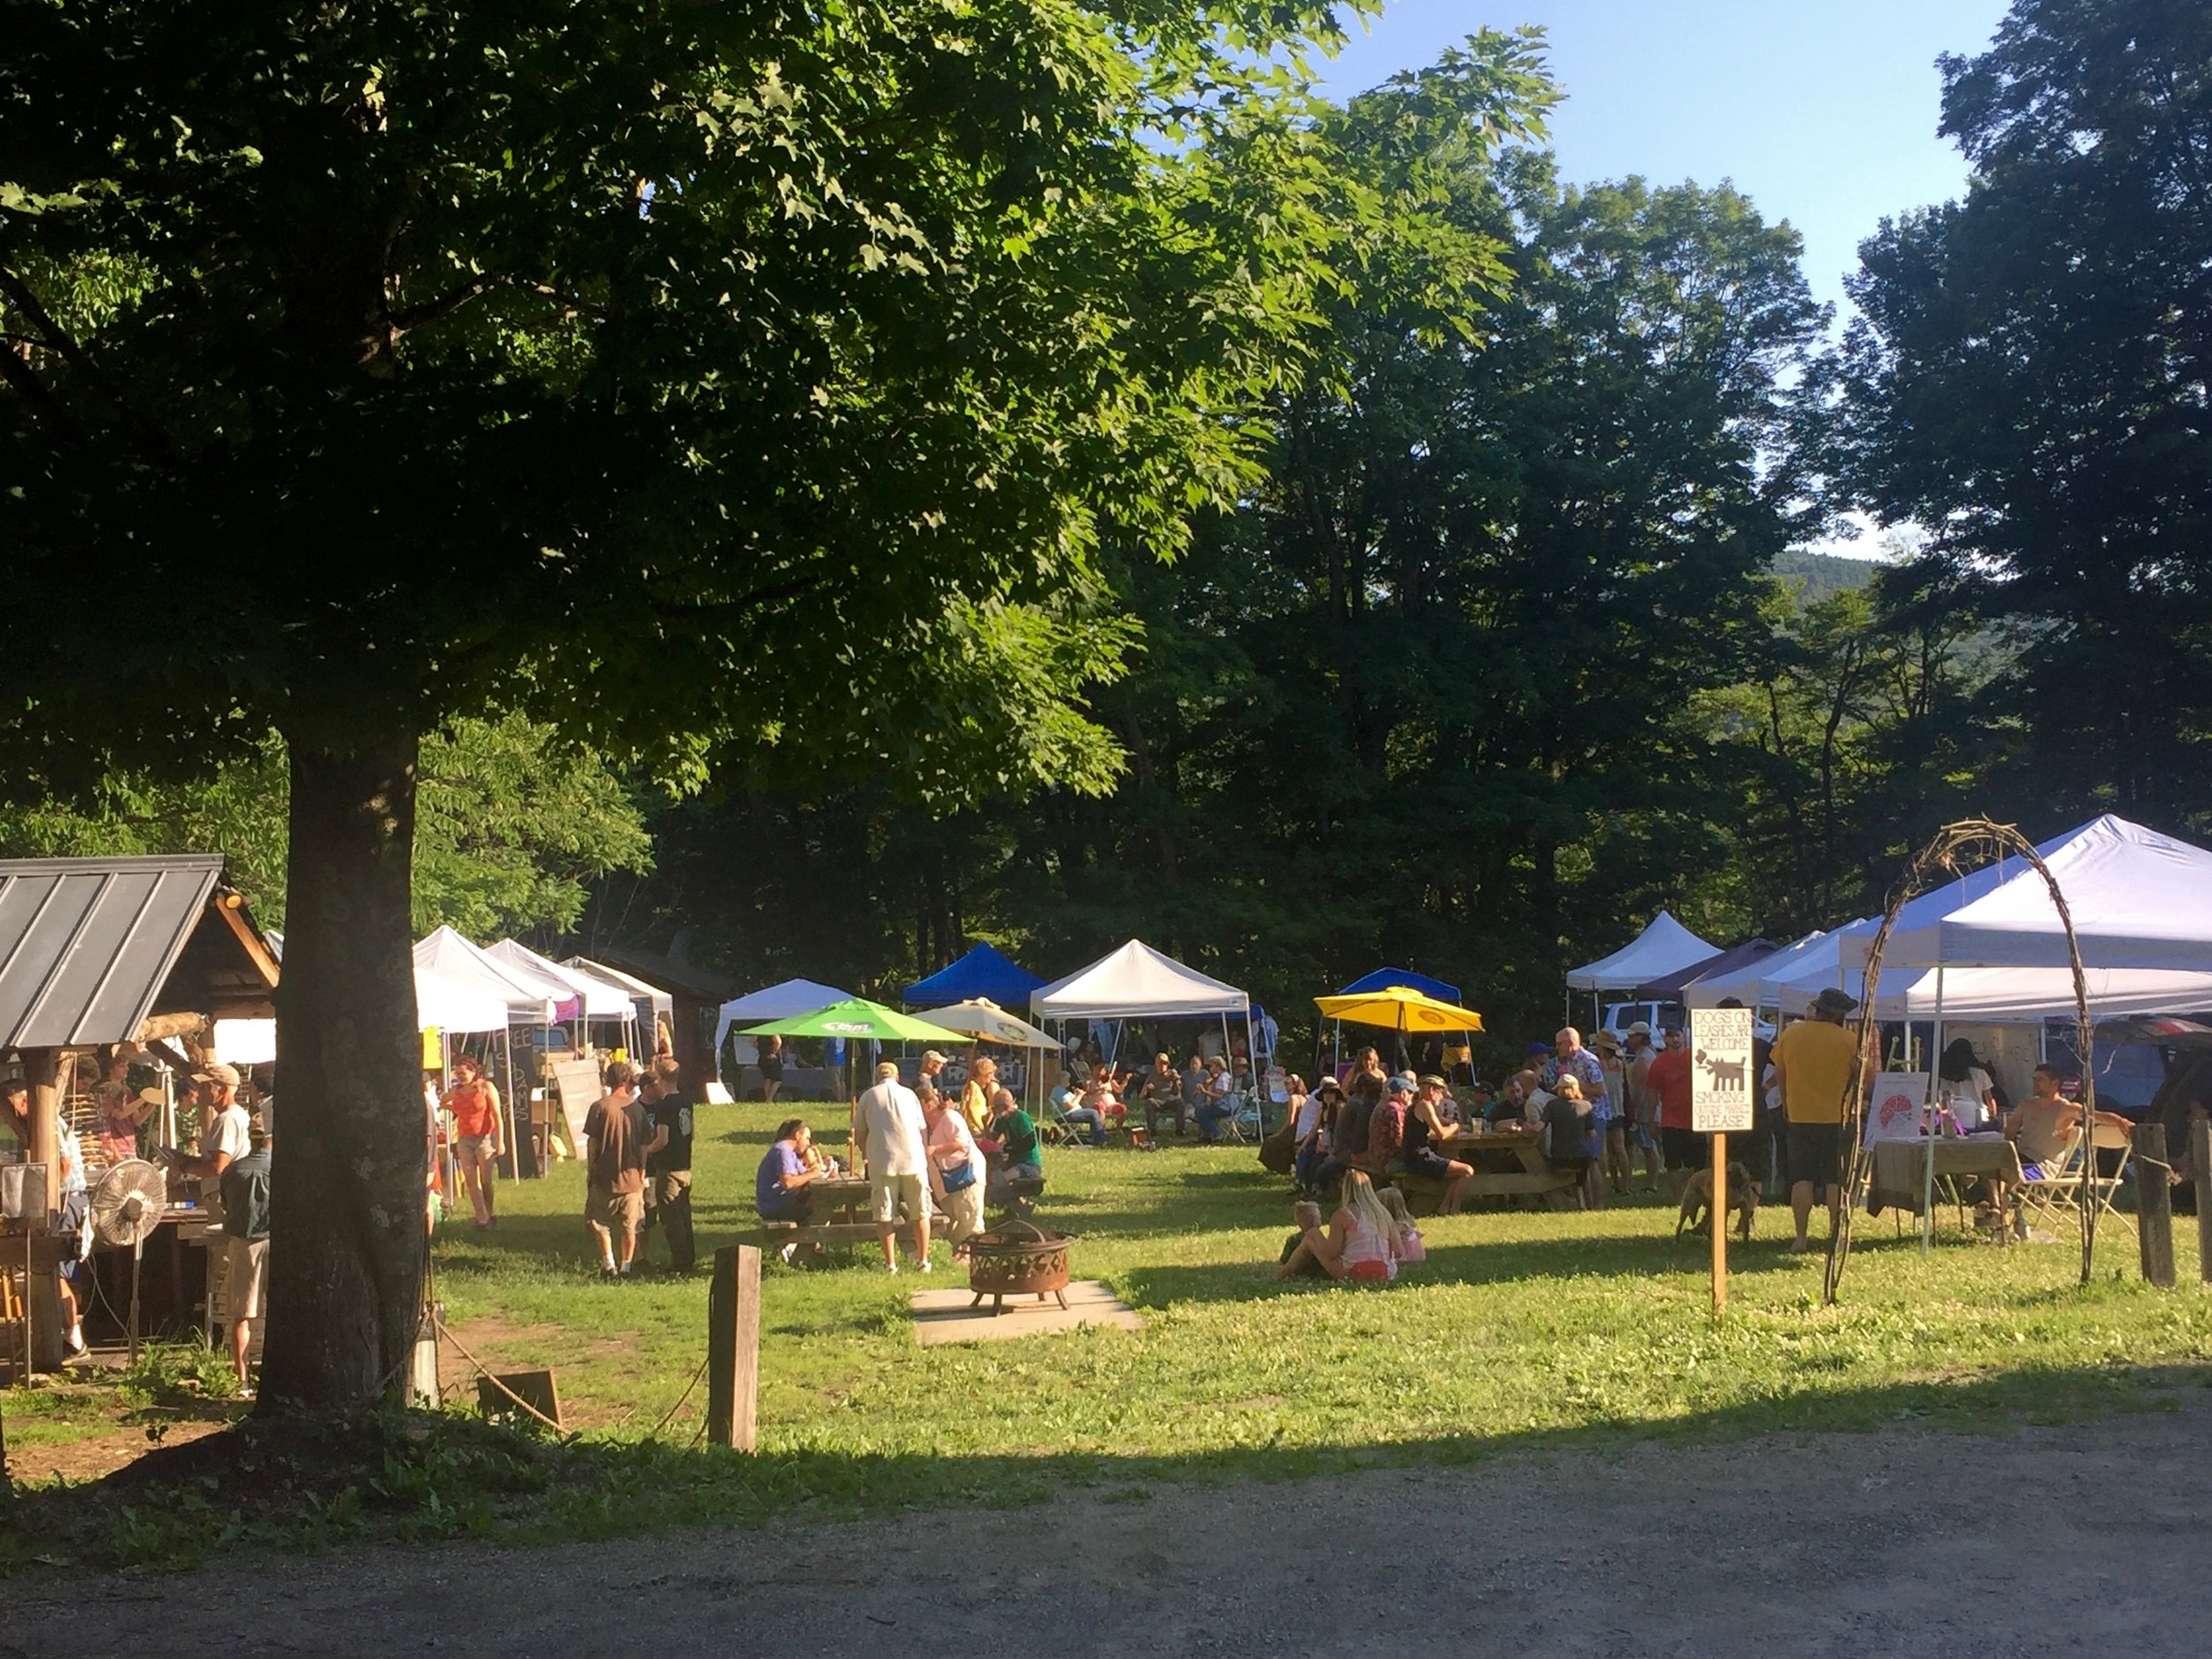 The West Townsend Farmers' Market